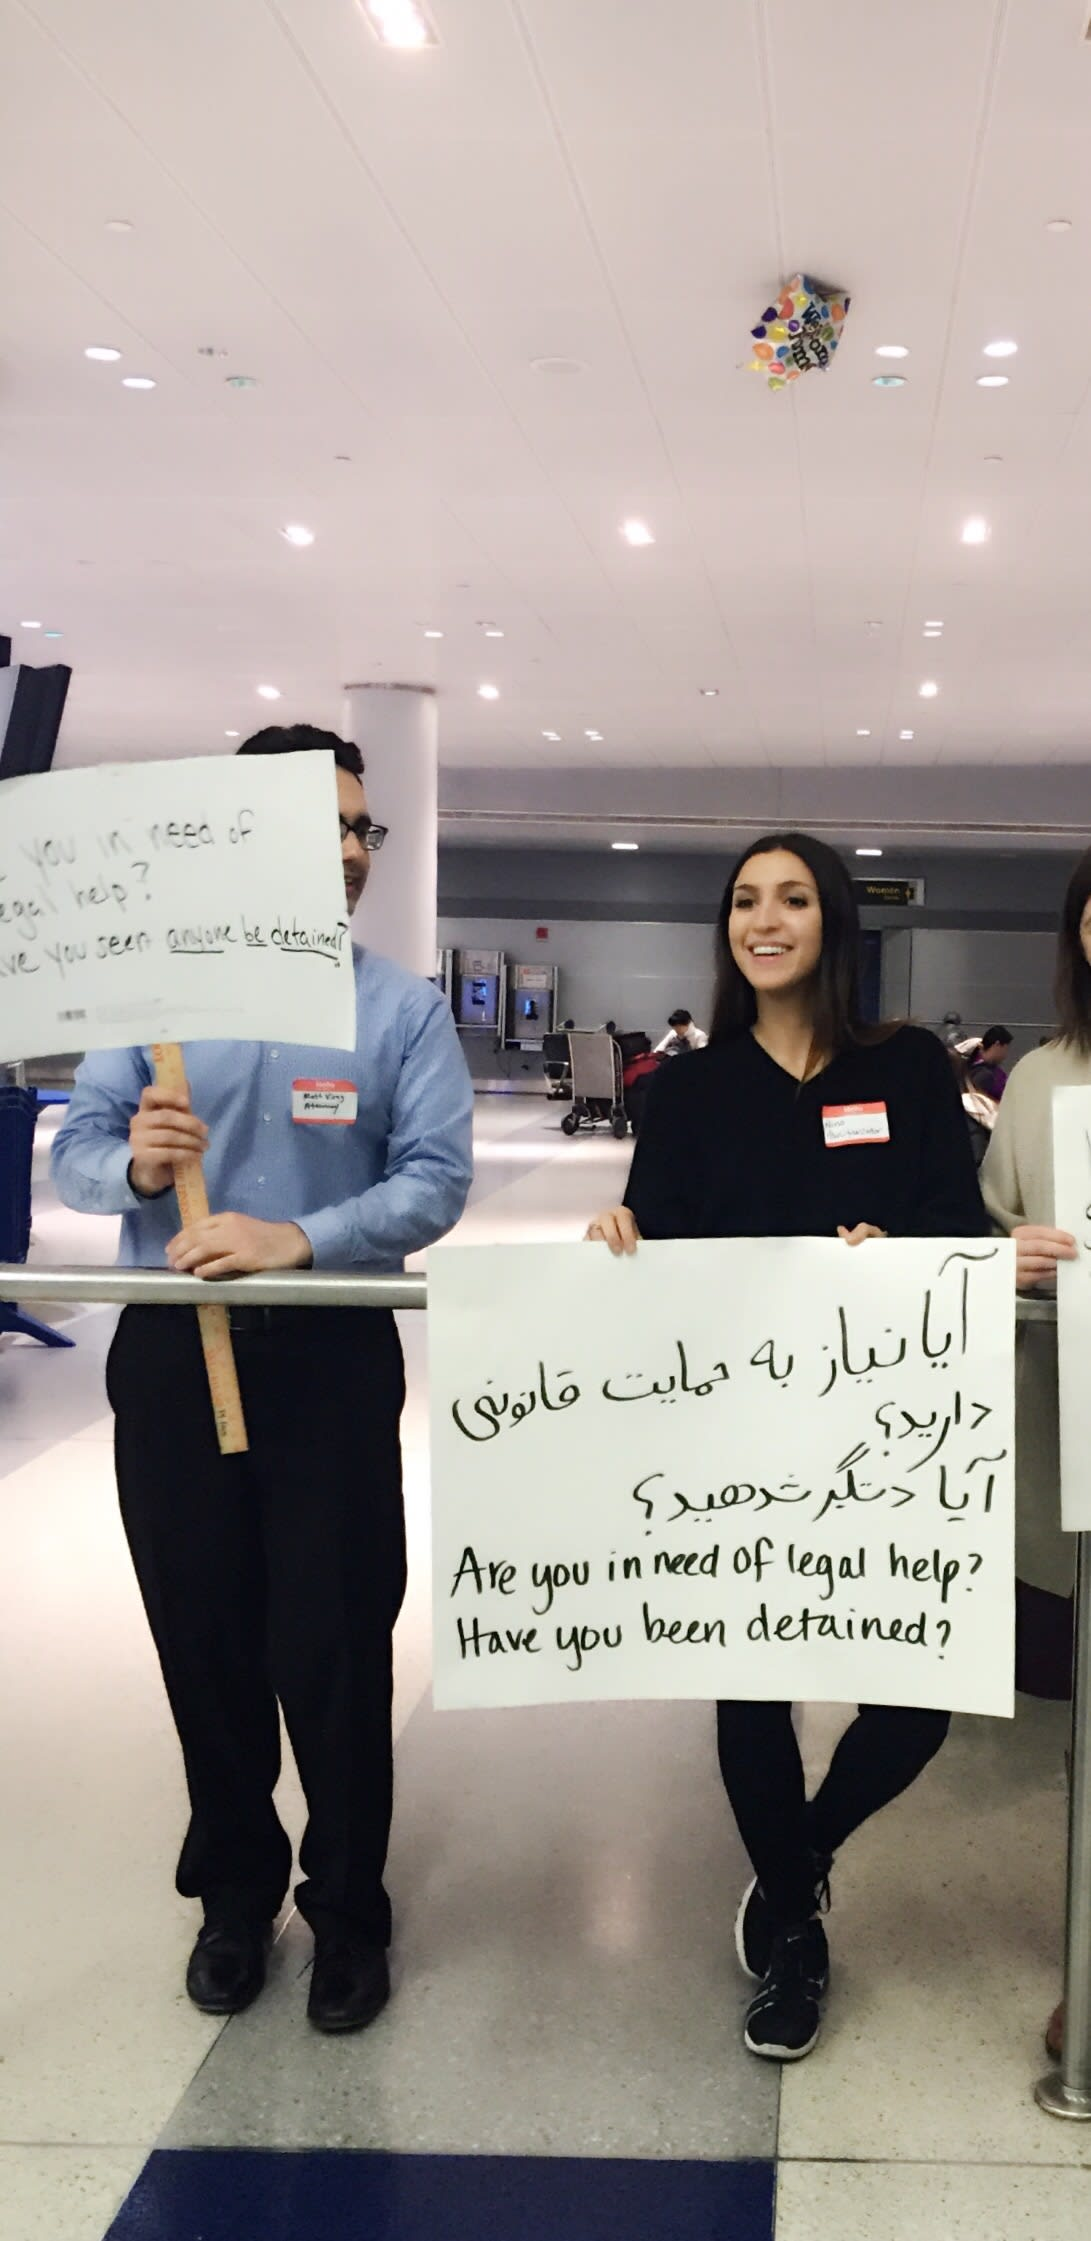 legal help sign for detainees